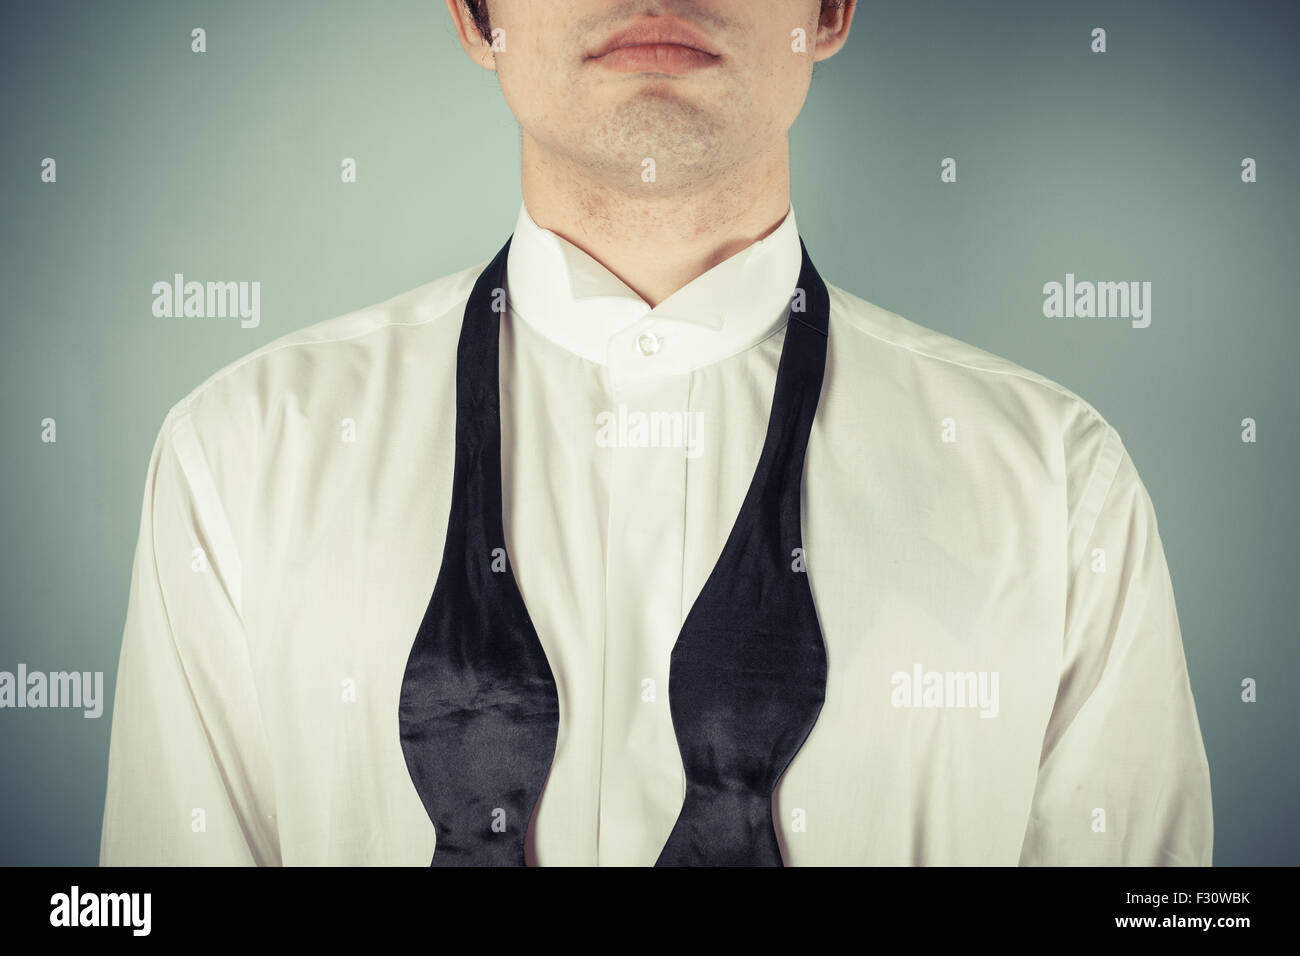 Young man is showing how to tie a formal bow tie - Stock Image